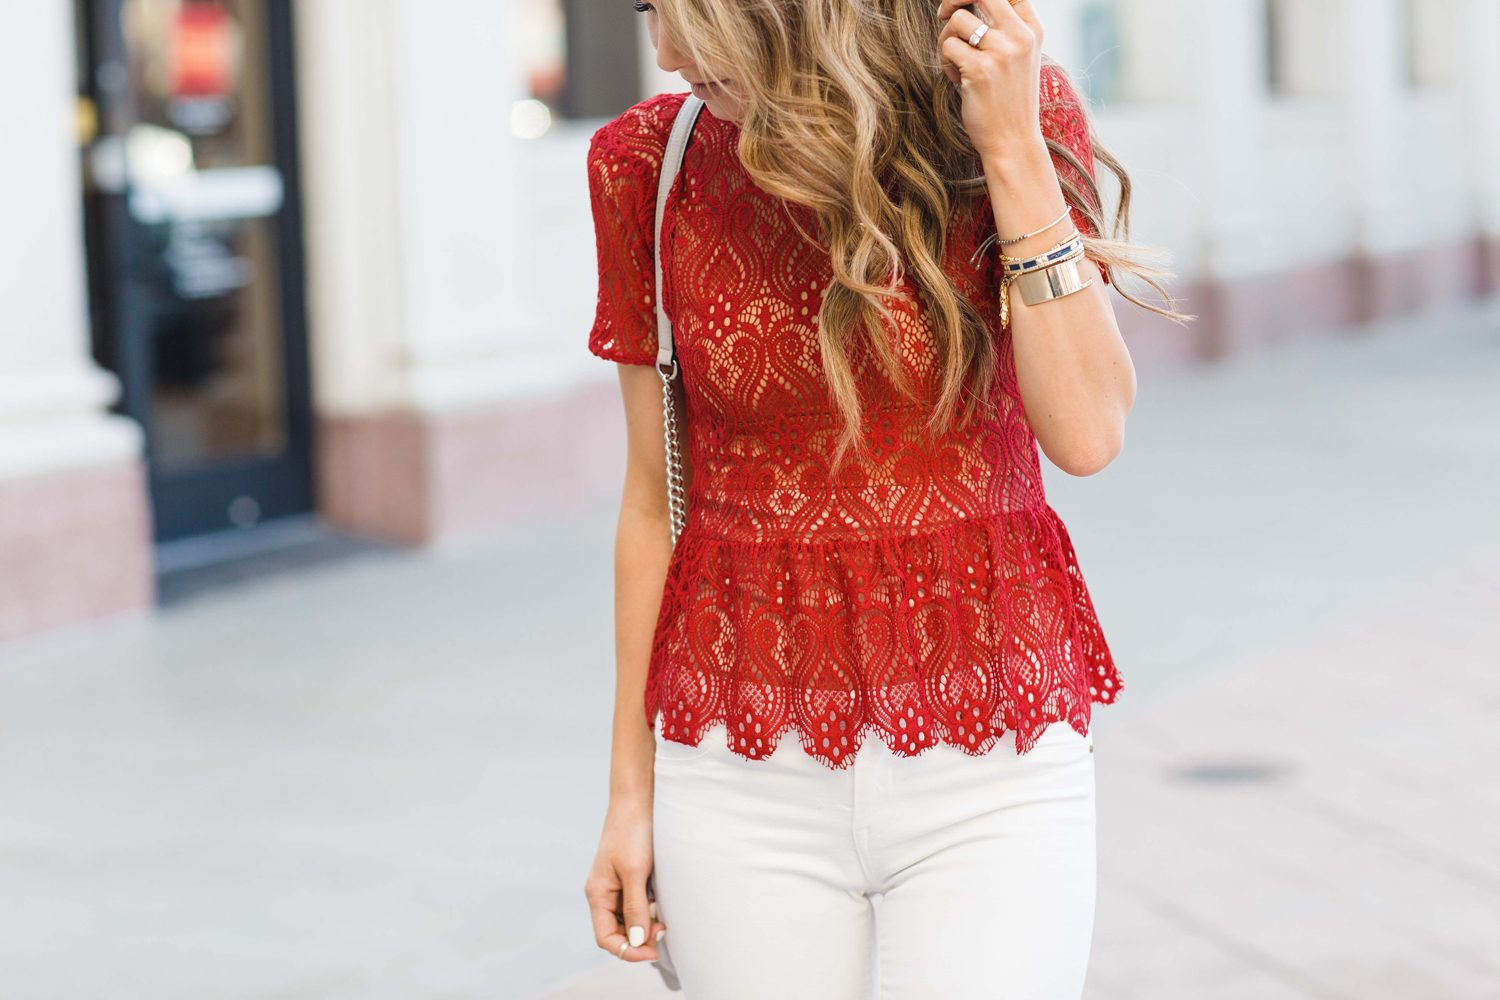 Merrick's Art Red Lace White Jeans